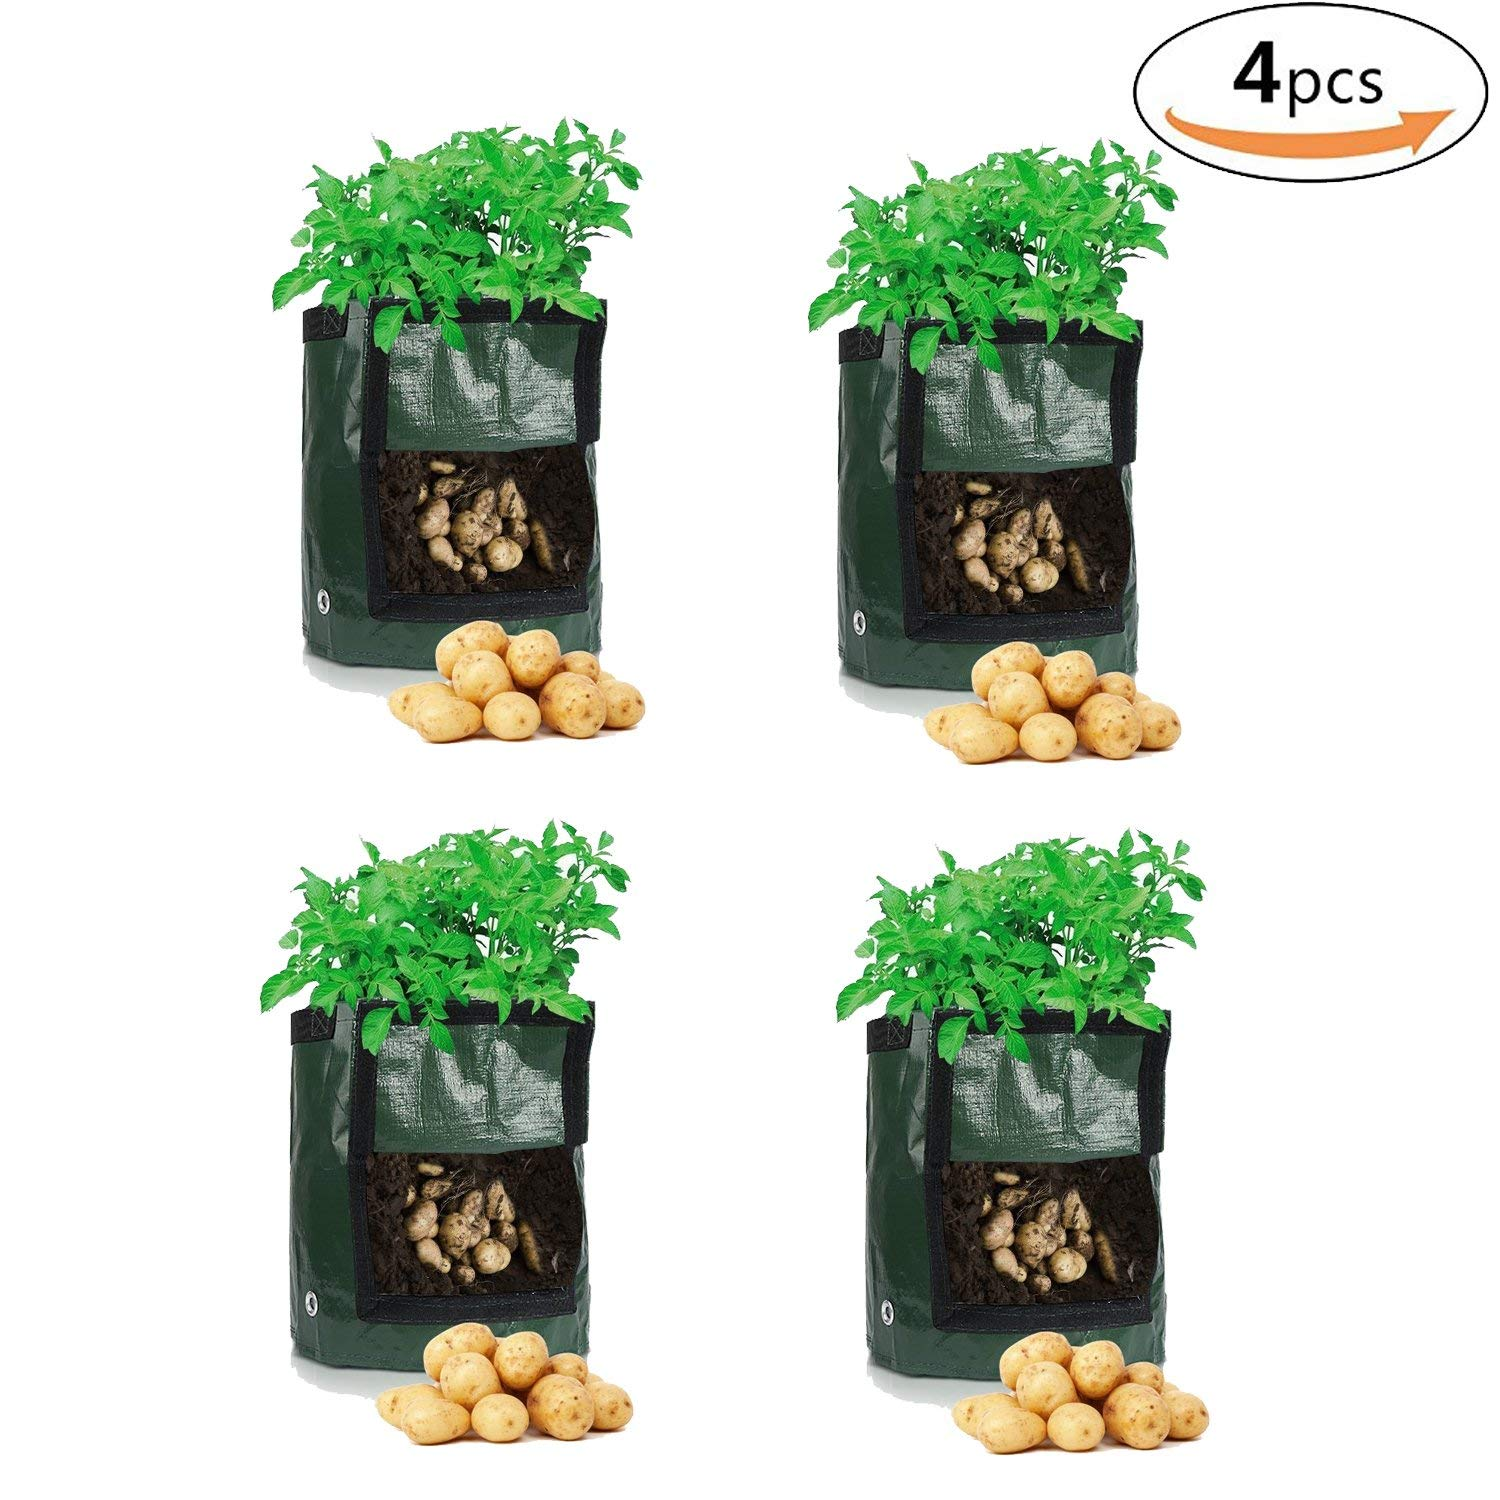 OUNONA 4pcs Potato Grow Bag Garden Durable 7 Gallon Vegetables Planter Bags with Access Flap and Handle,Raised Garden Bed for Planting Vegetables,Taro,Radish,Carrots,Onions(Green)